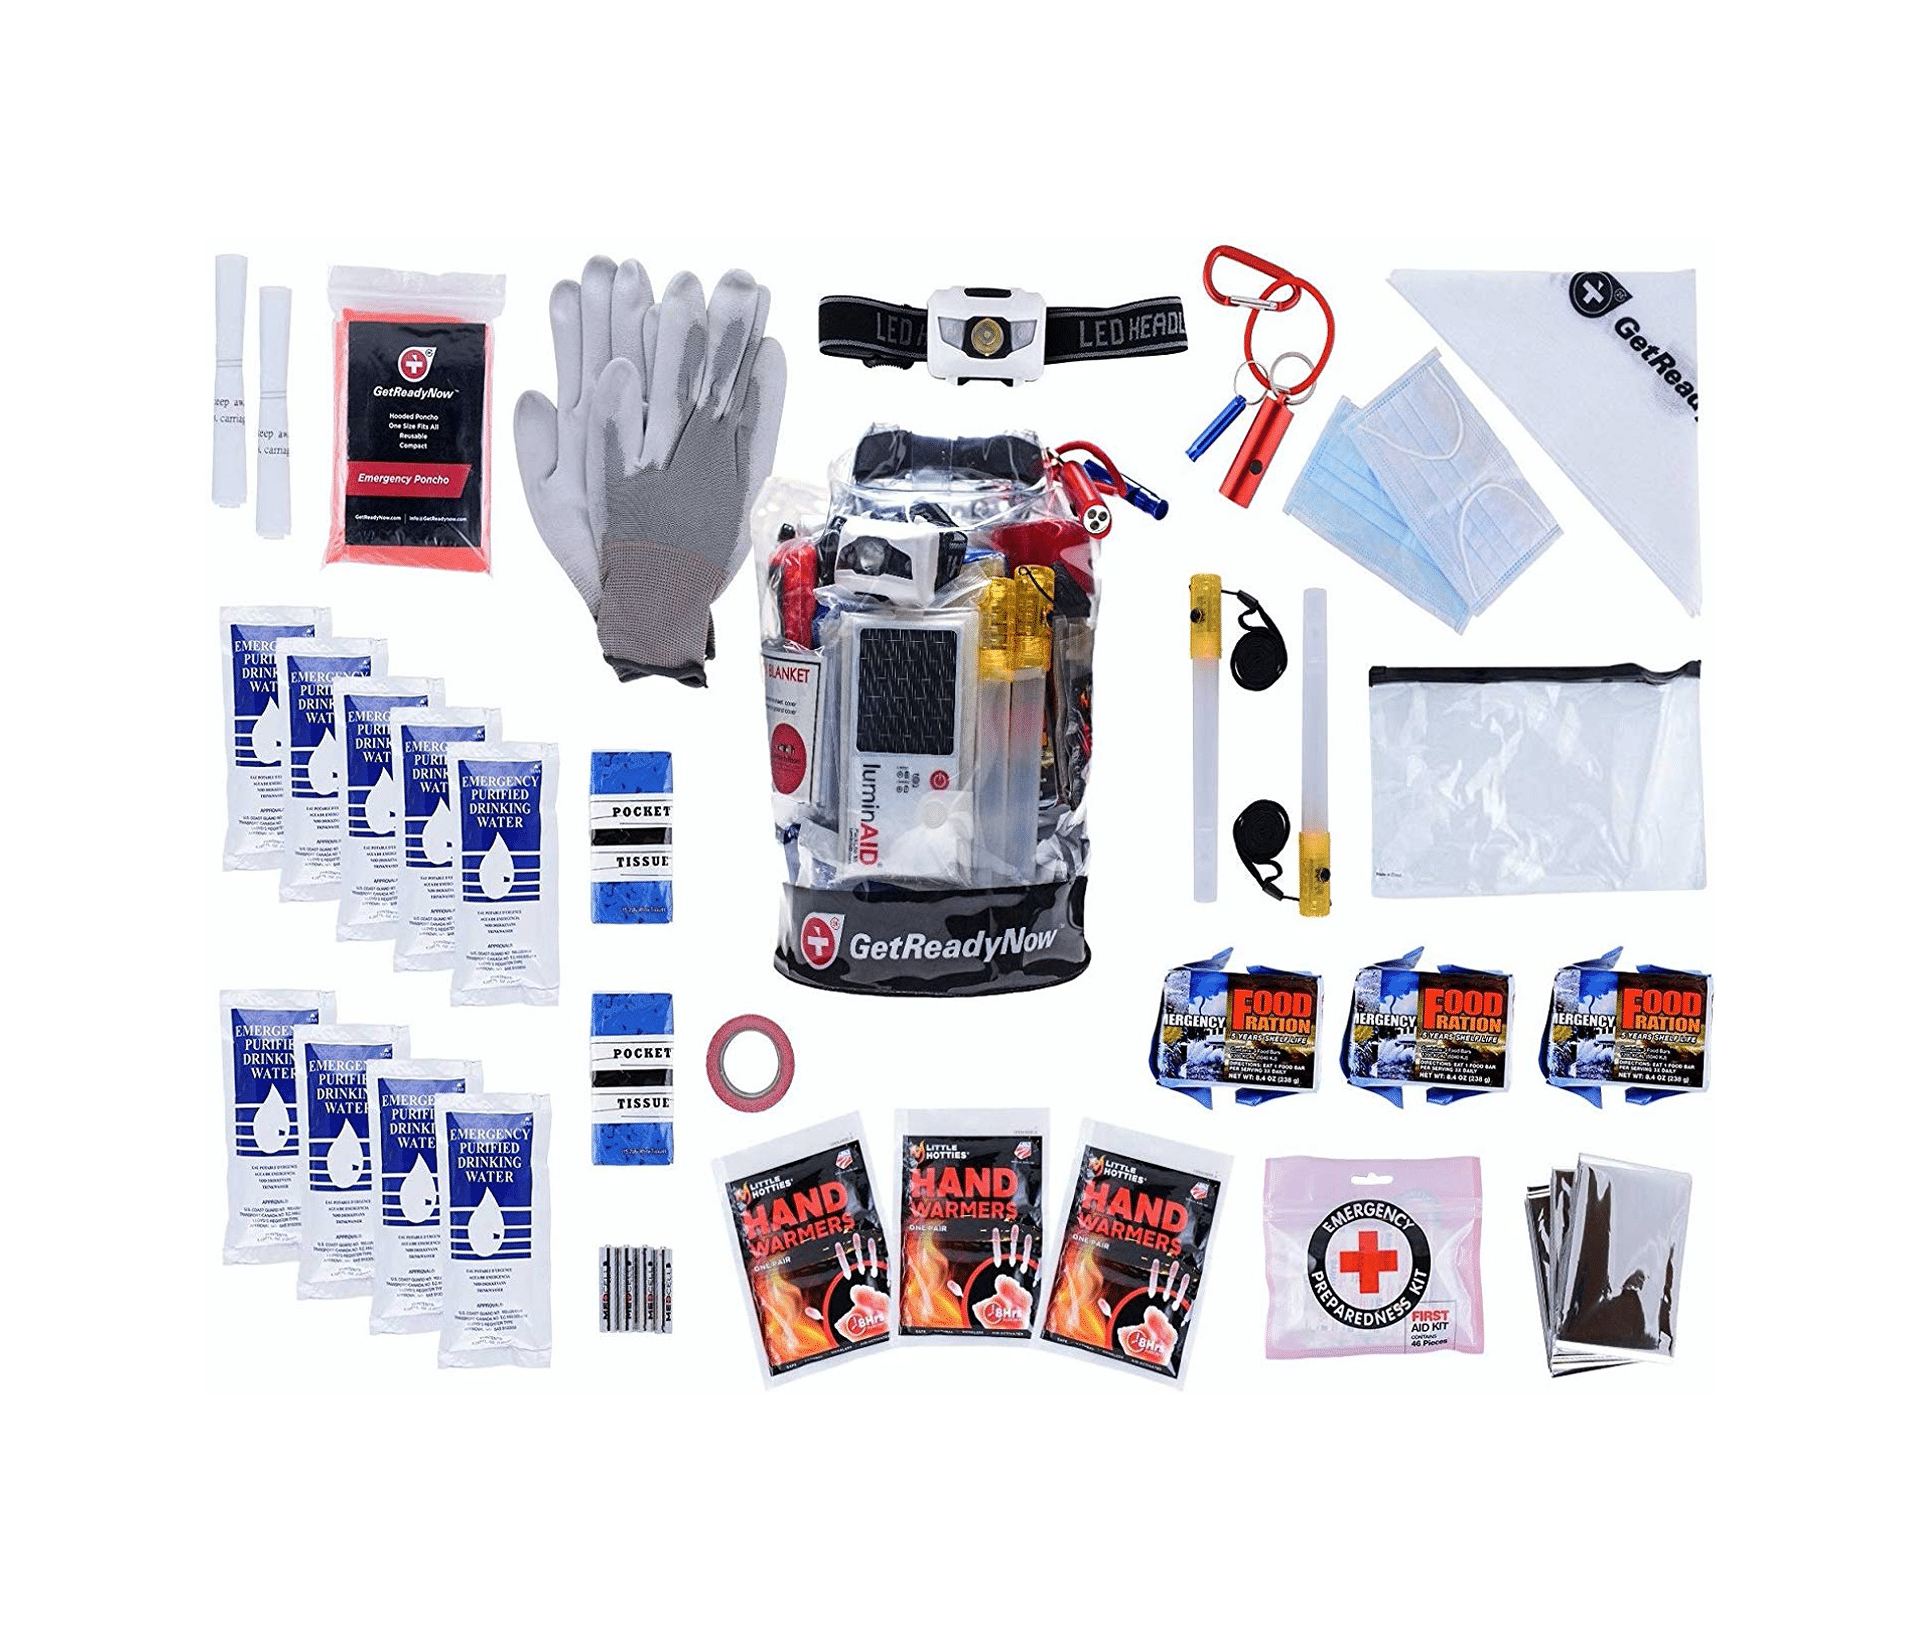 GetReadyNow Personal 72-Hour Survival Kit